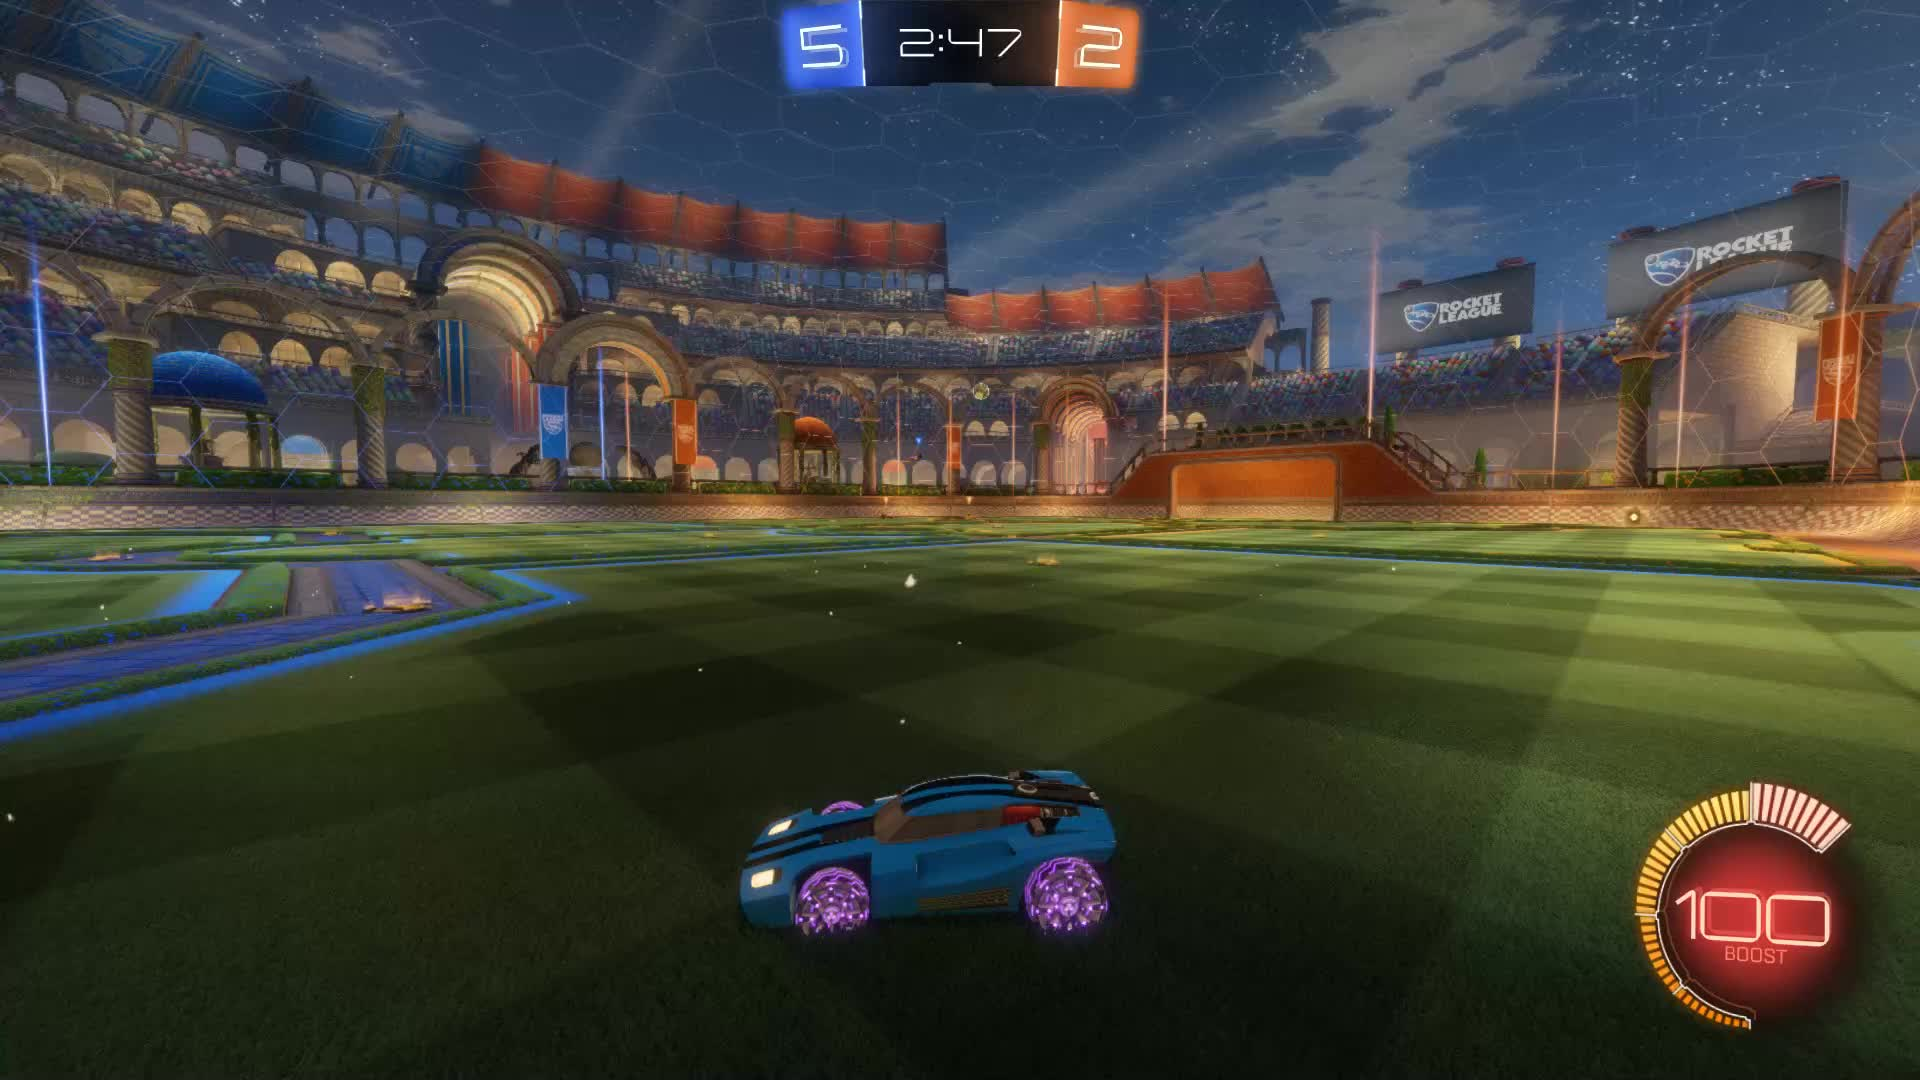 Gif Your Game, GifYourGame, Rocket League, RocketLeague, VEX Nexus, Goal 8: VEX Nexus GIFs